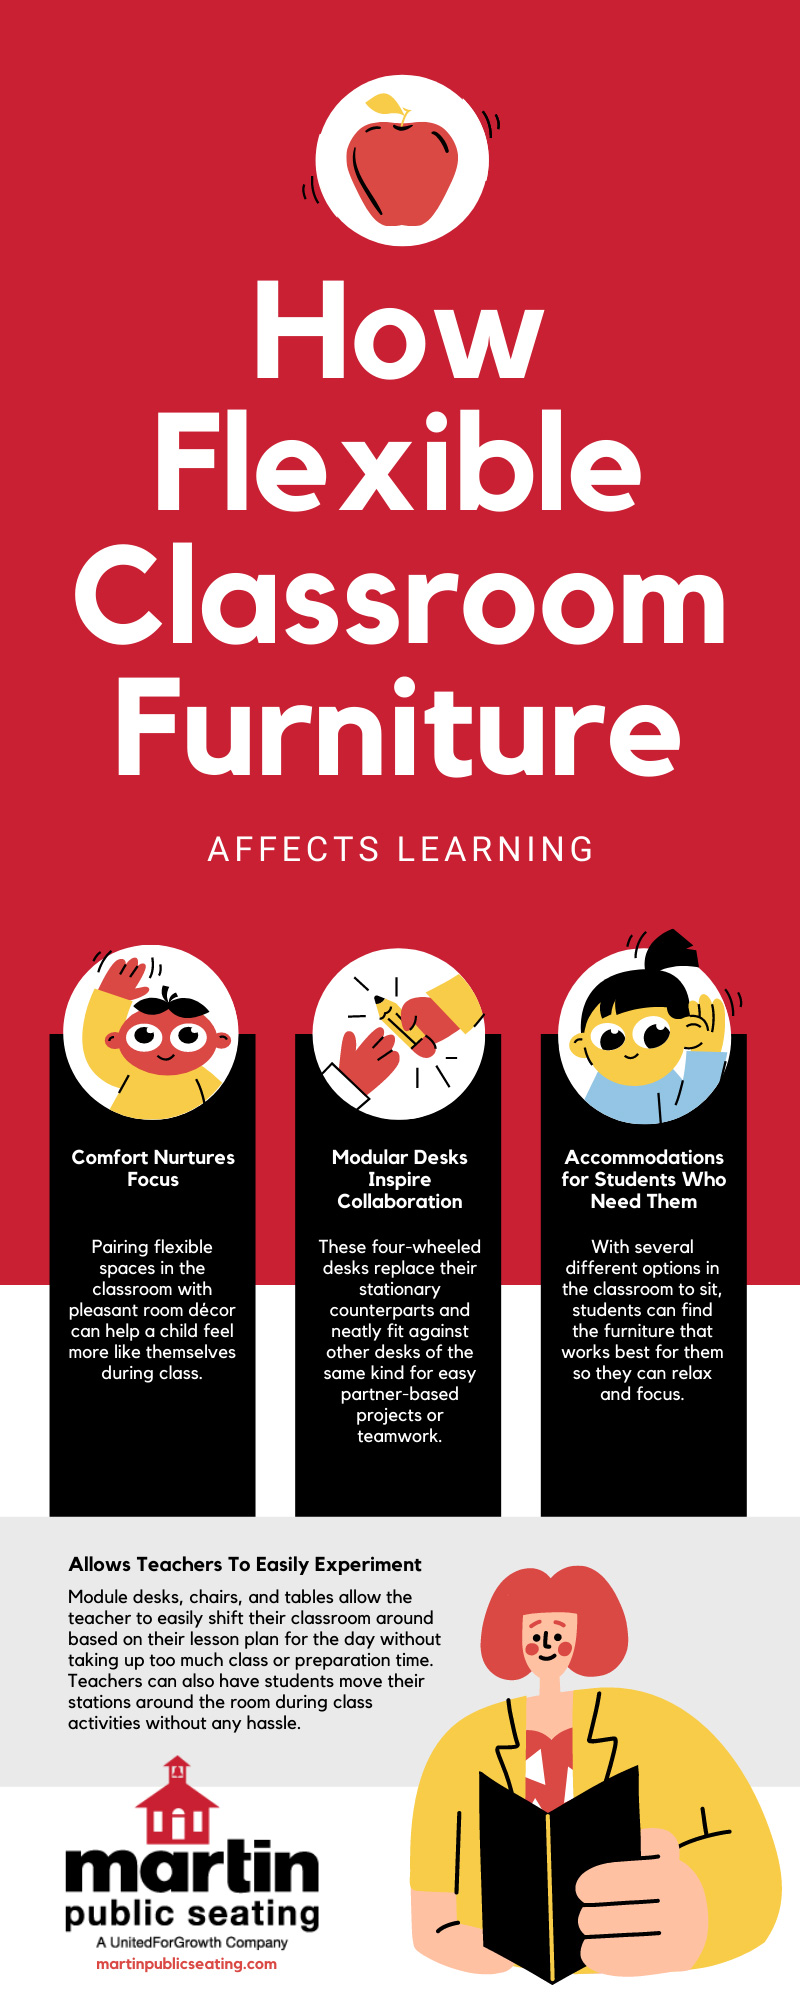 How Flexible Classroom Furniture Affects Learning